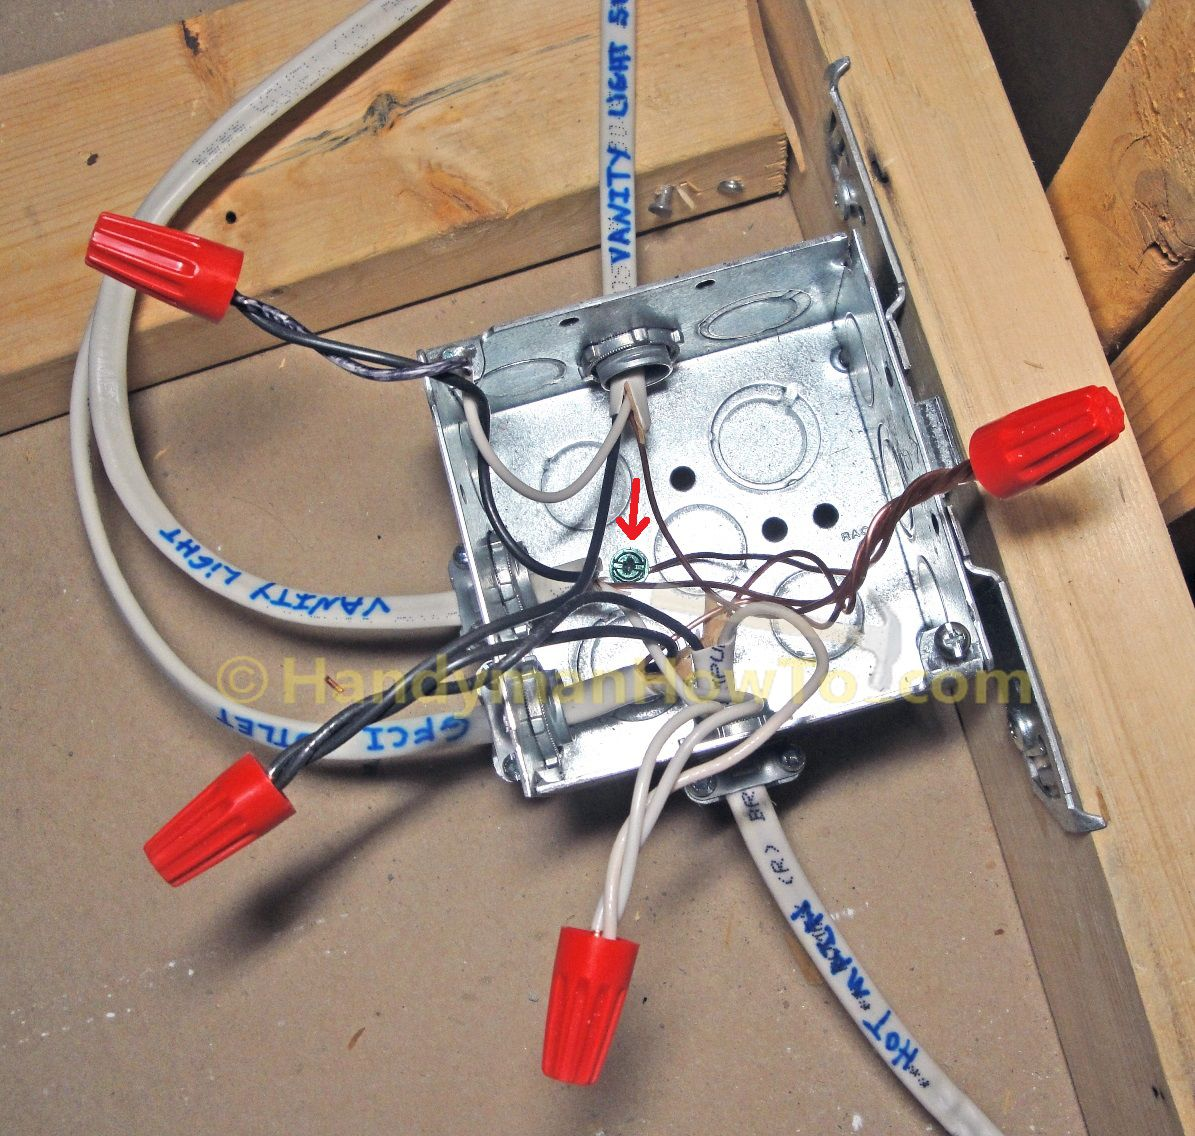 basement wiring diagram school bus parts metal square junction box with cover and mounting bracket